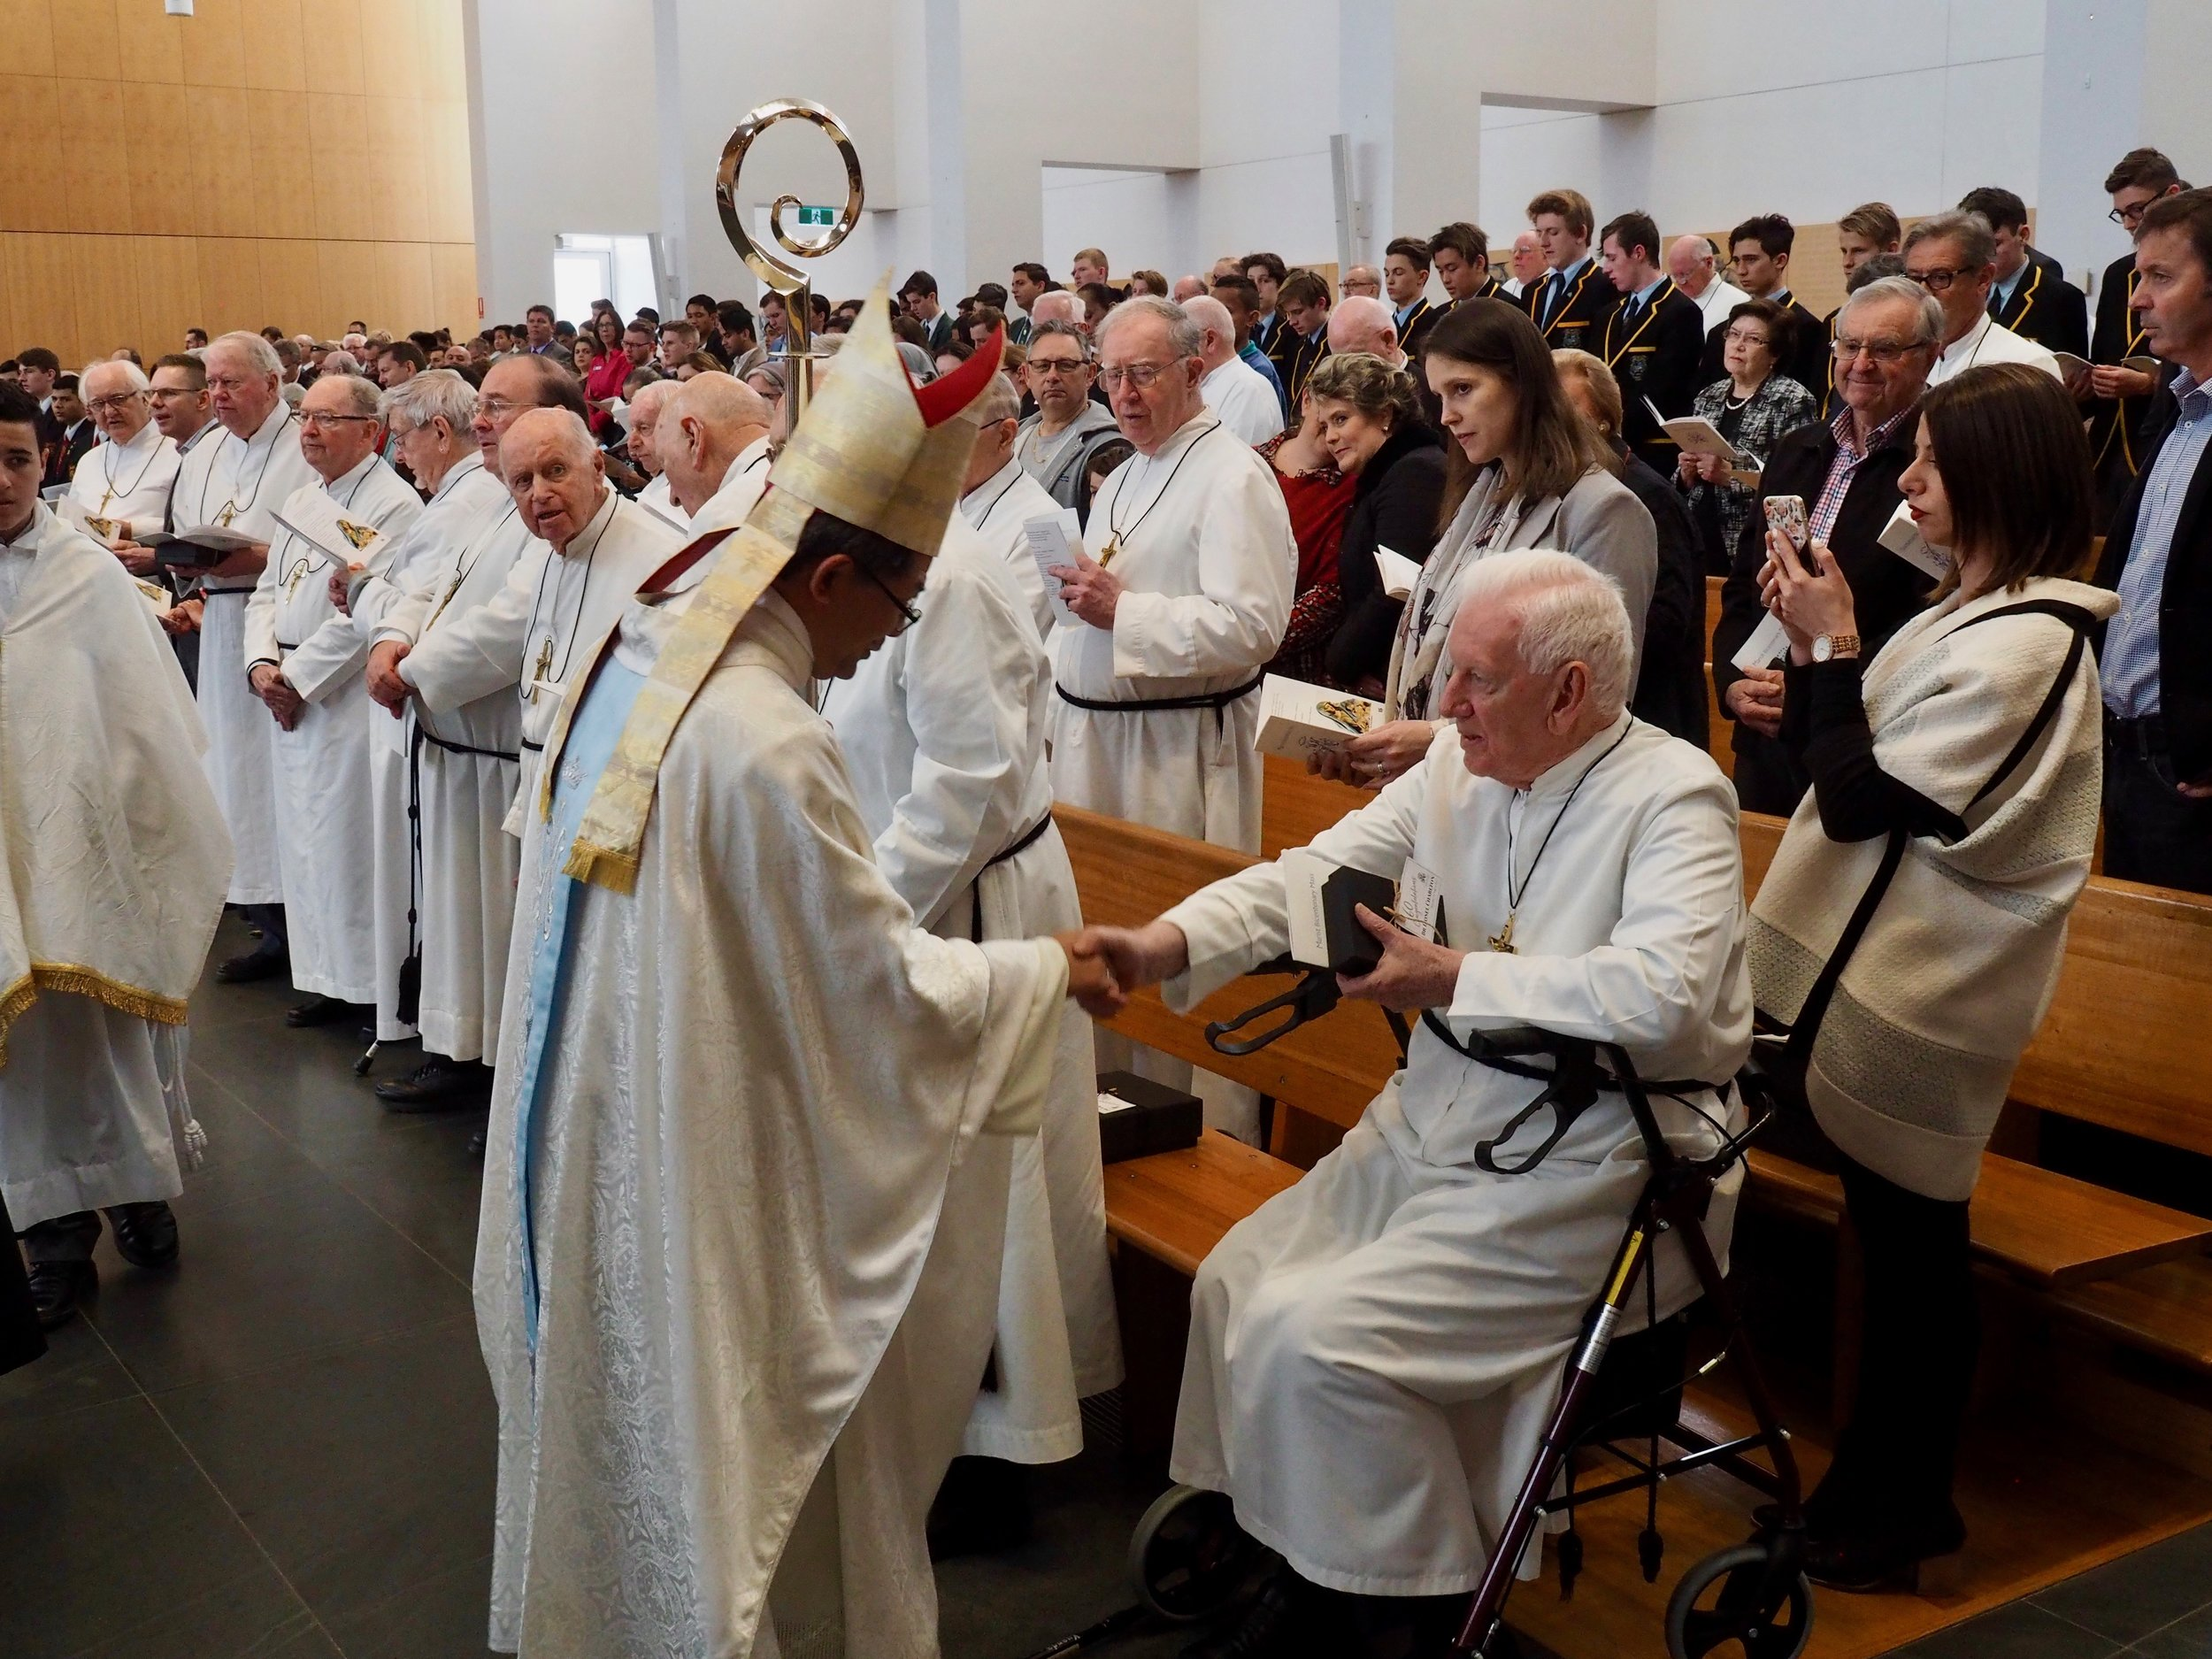 Bicentenary Mass Sydney 12 Aug 2017 Photos by Paul Harris 00114.jpg